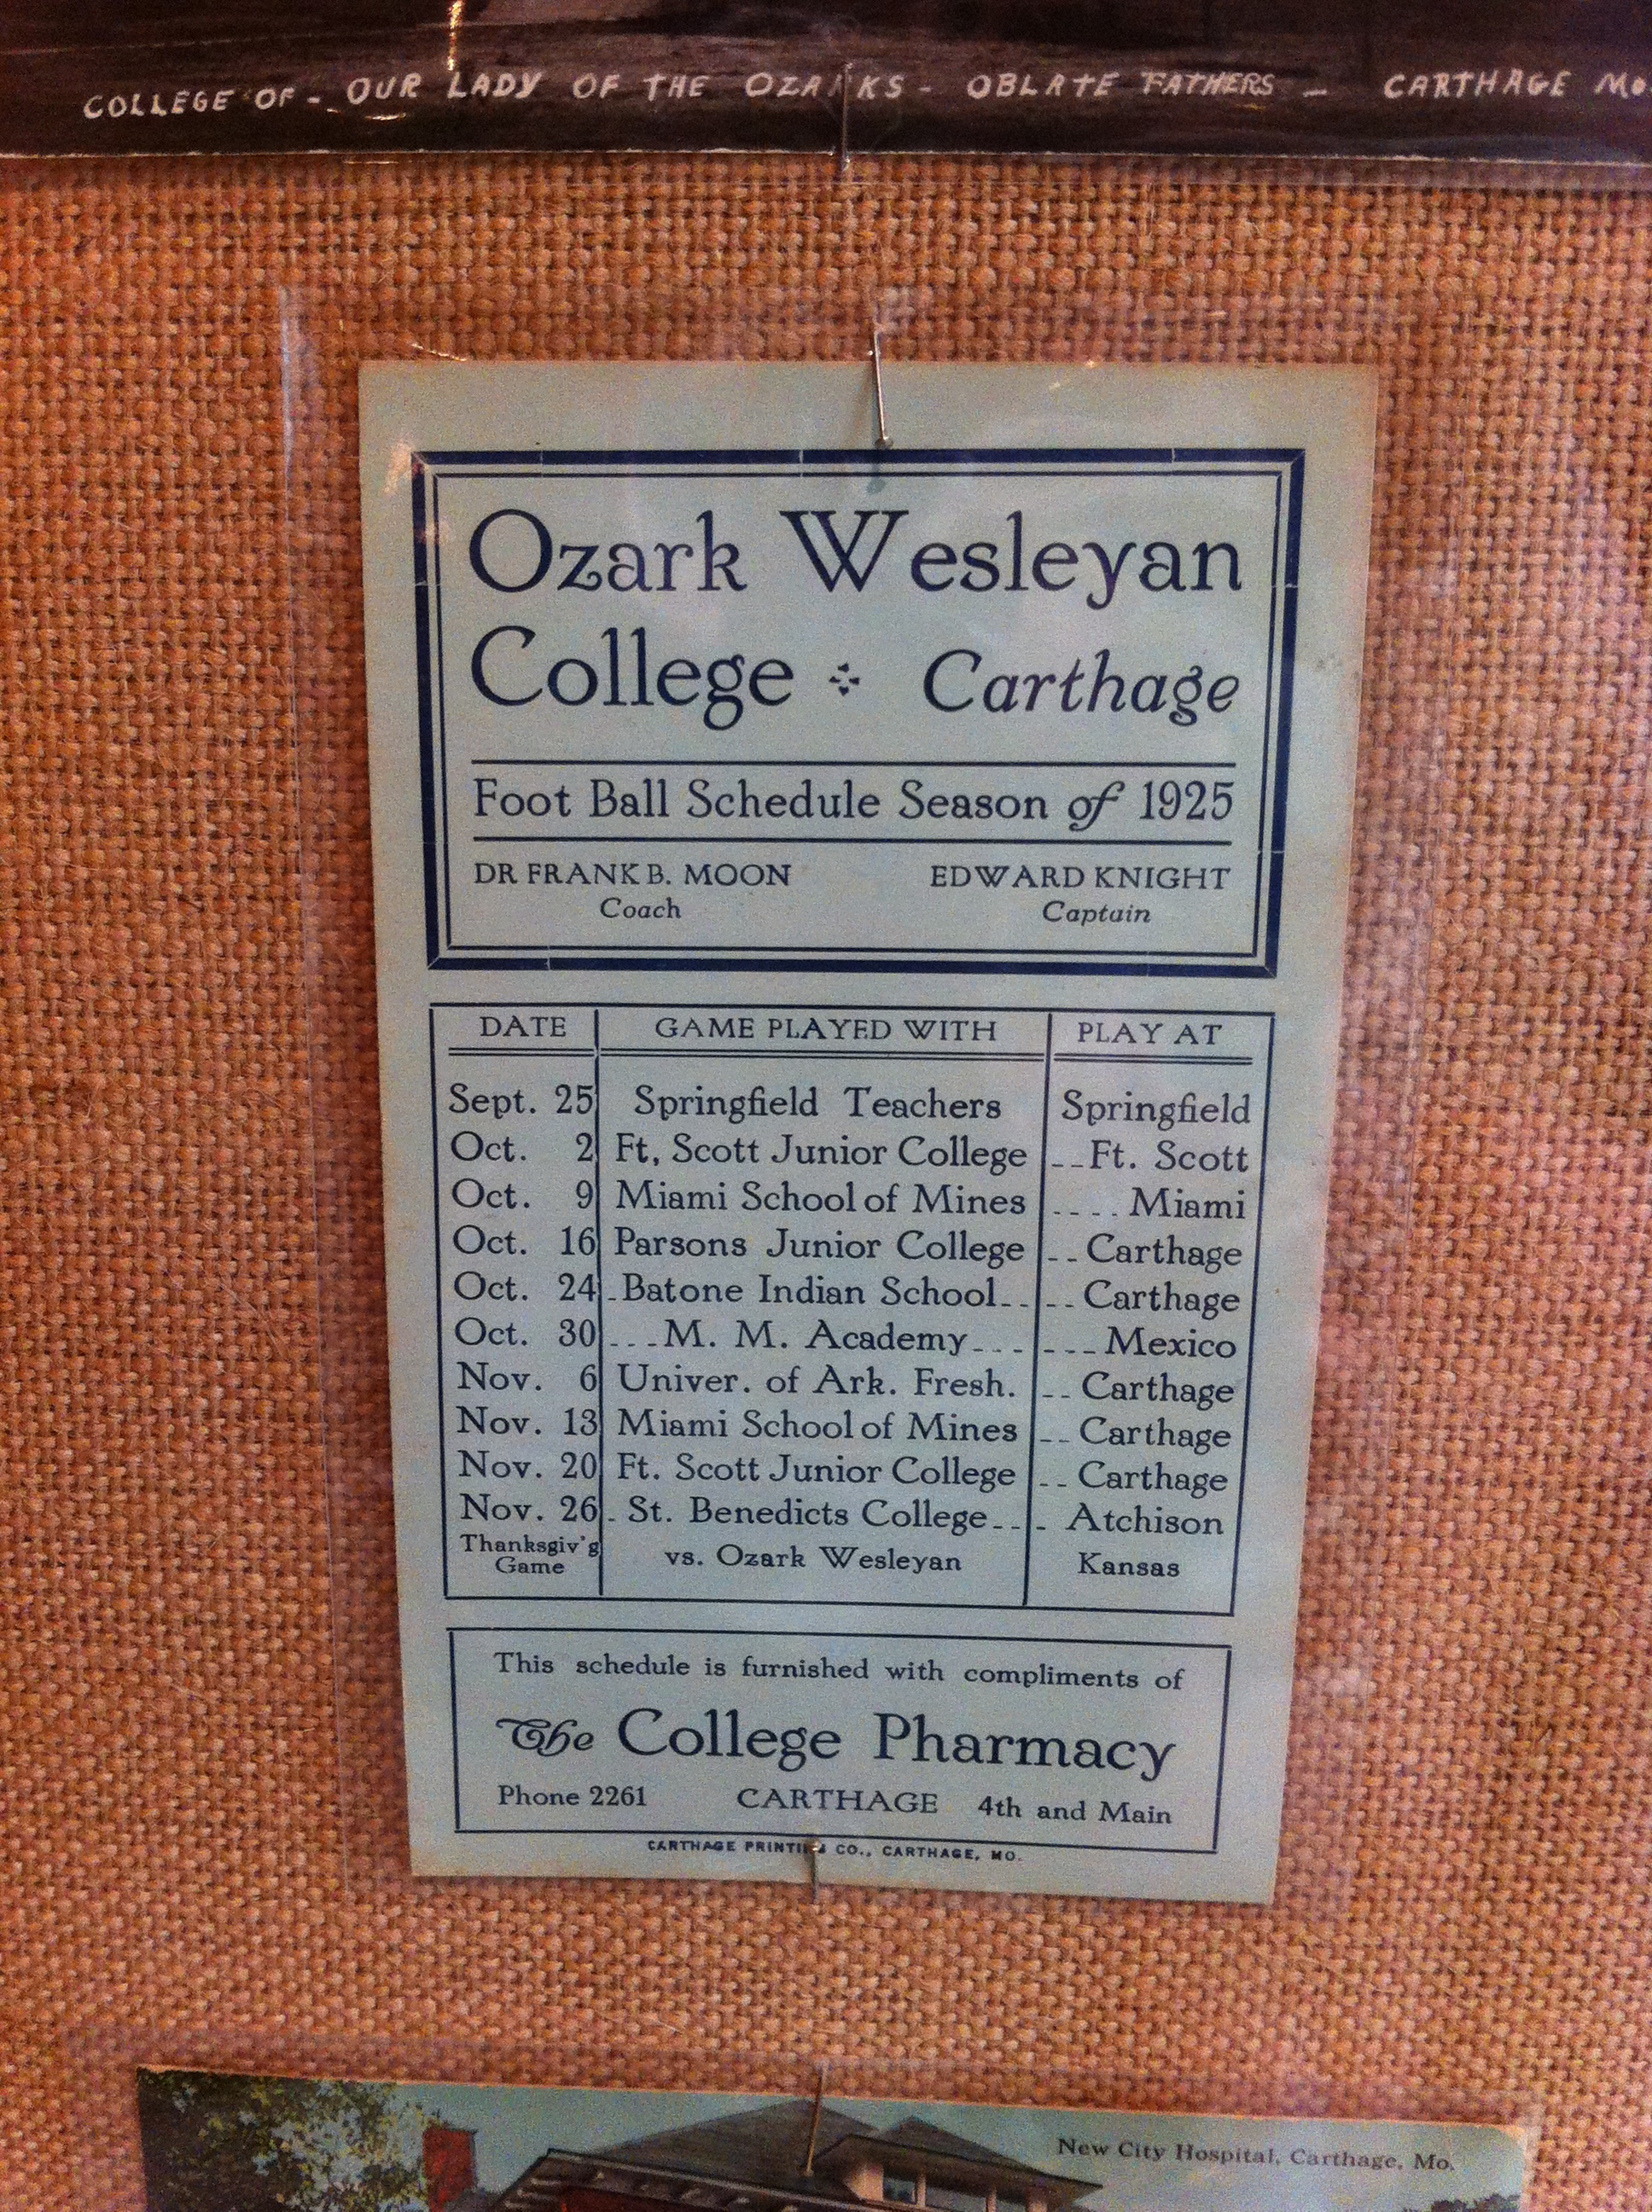 1925 Football Schedule for Ozark Wesleyan College on display during 2017's 175th Anniversary of Carthage exhibit at the Powers Museum.